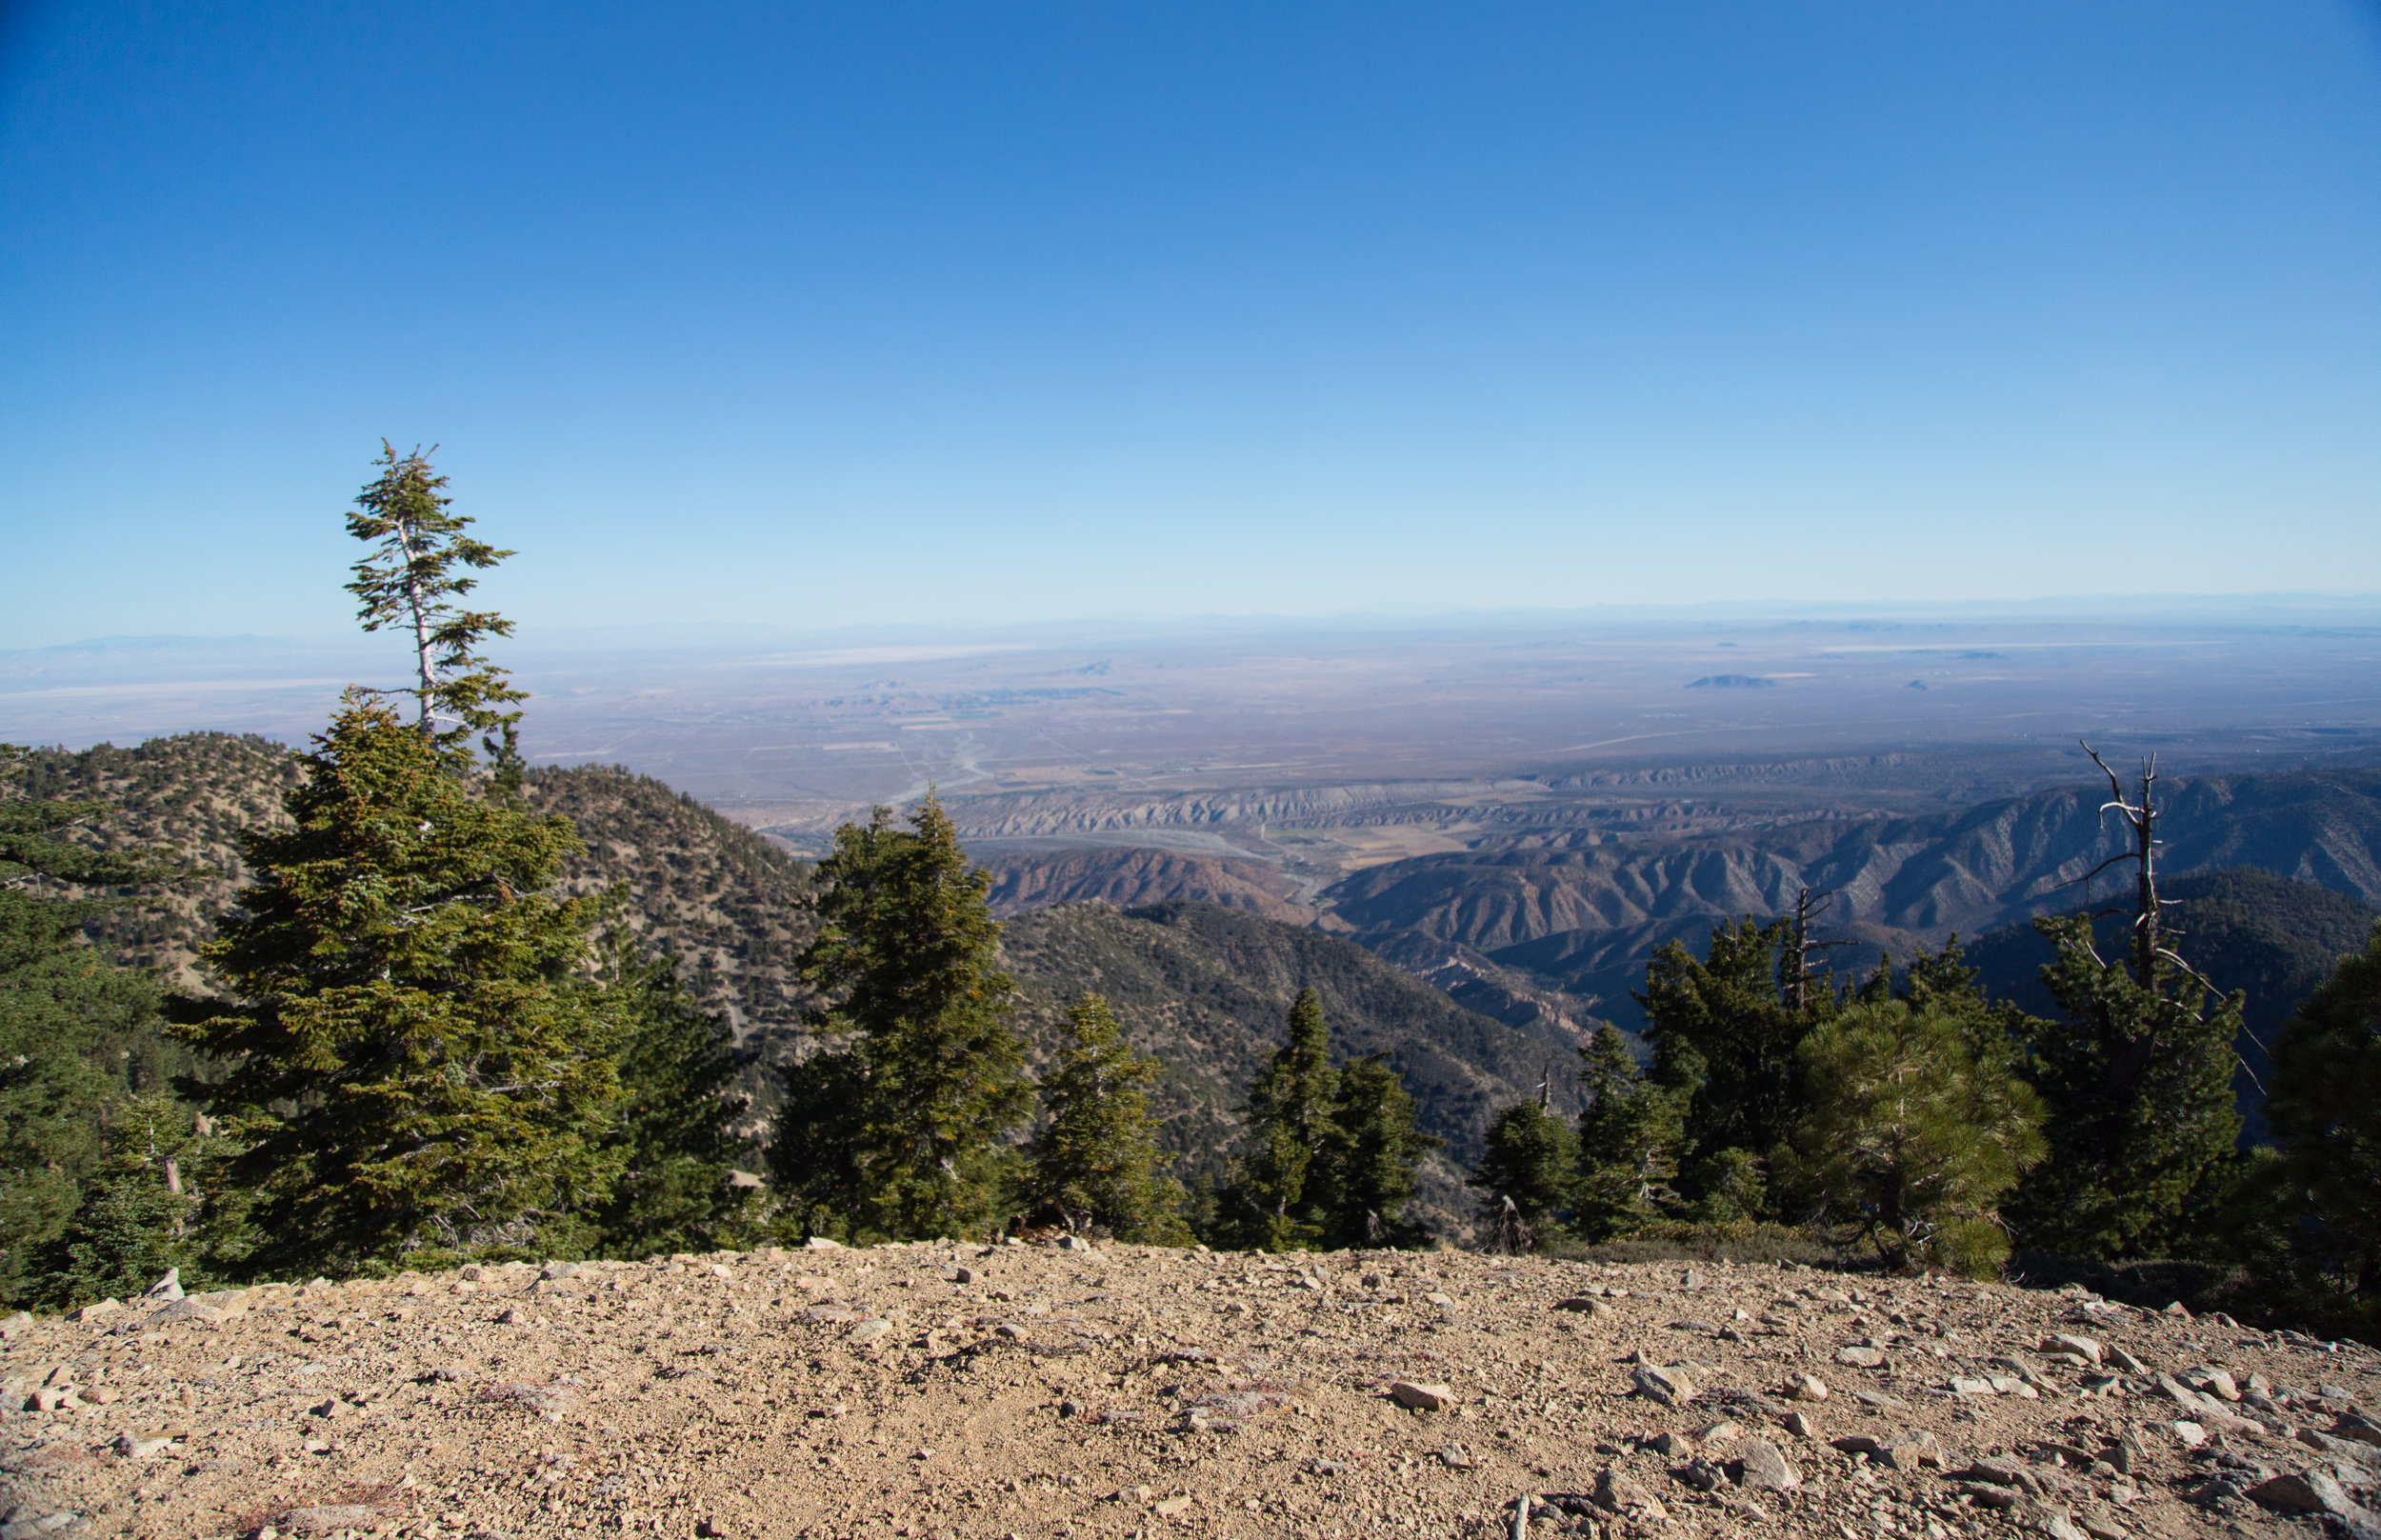 Made it to the summit!Since there are no trees, there's a wonderful 360 degree view of everything from the lush, San Gabriel mountains to the mojave desert to the Devil's Punchbowl and the San Andreas rift zone!